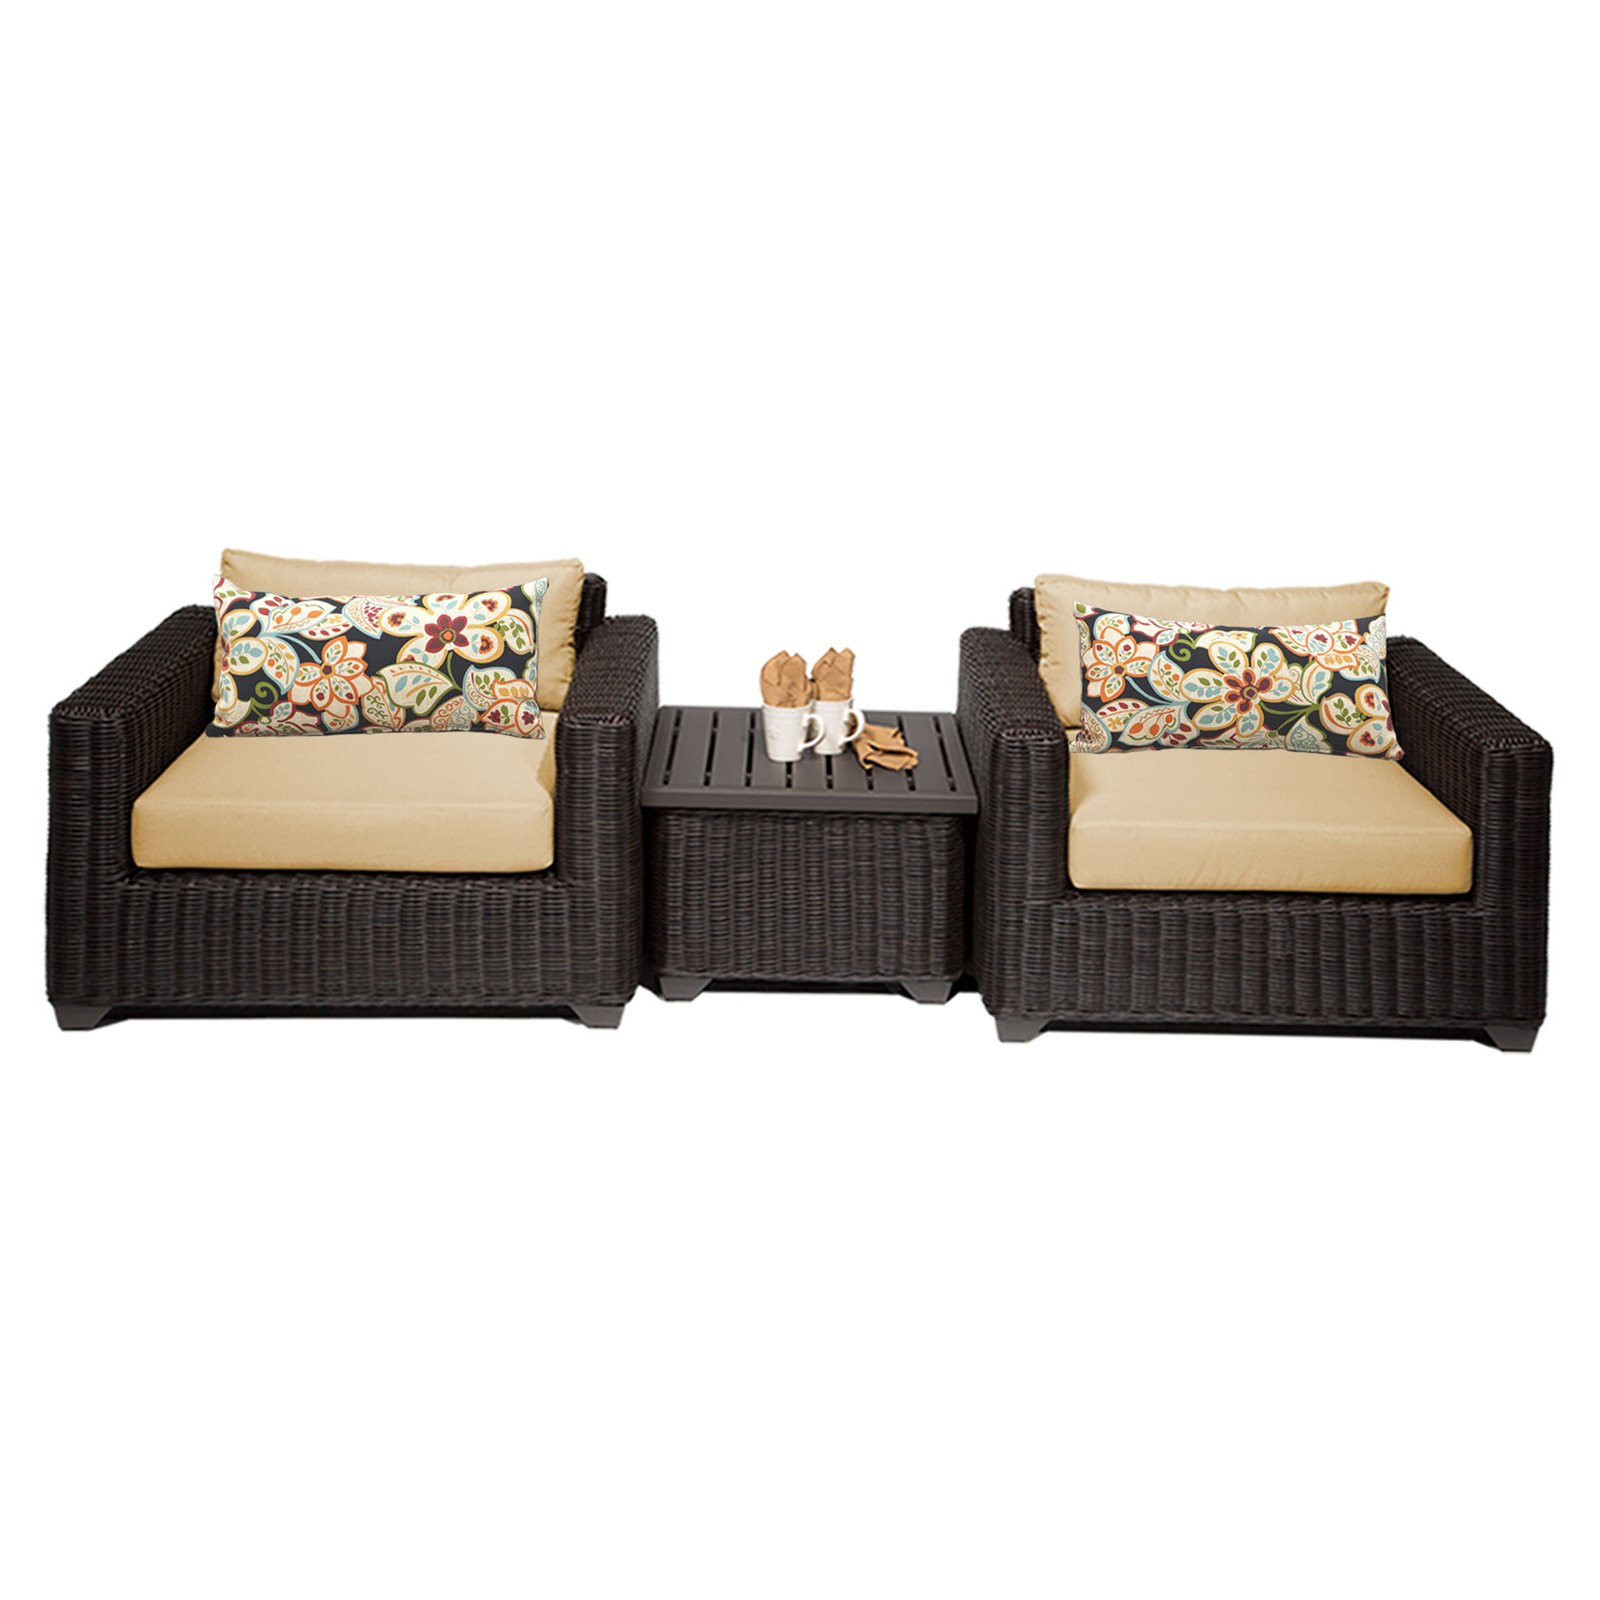 tk classics venice wicker 3 patio conversation set 3 Piece Patio Cushion Set id=99592